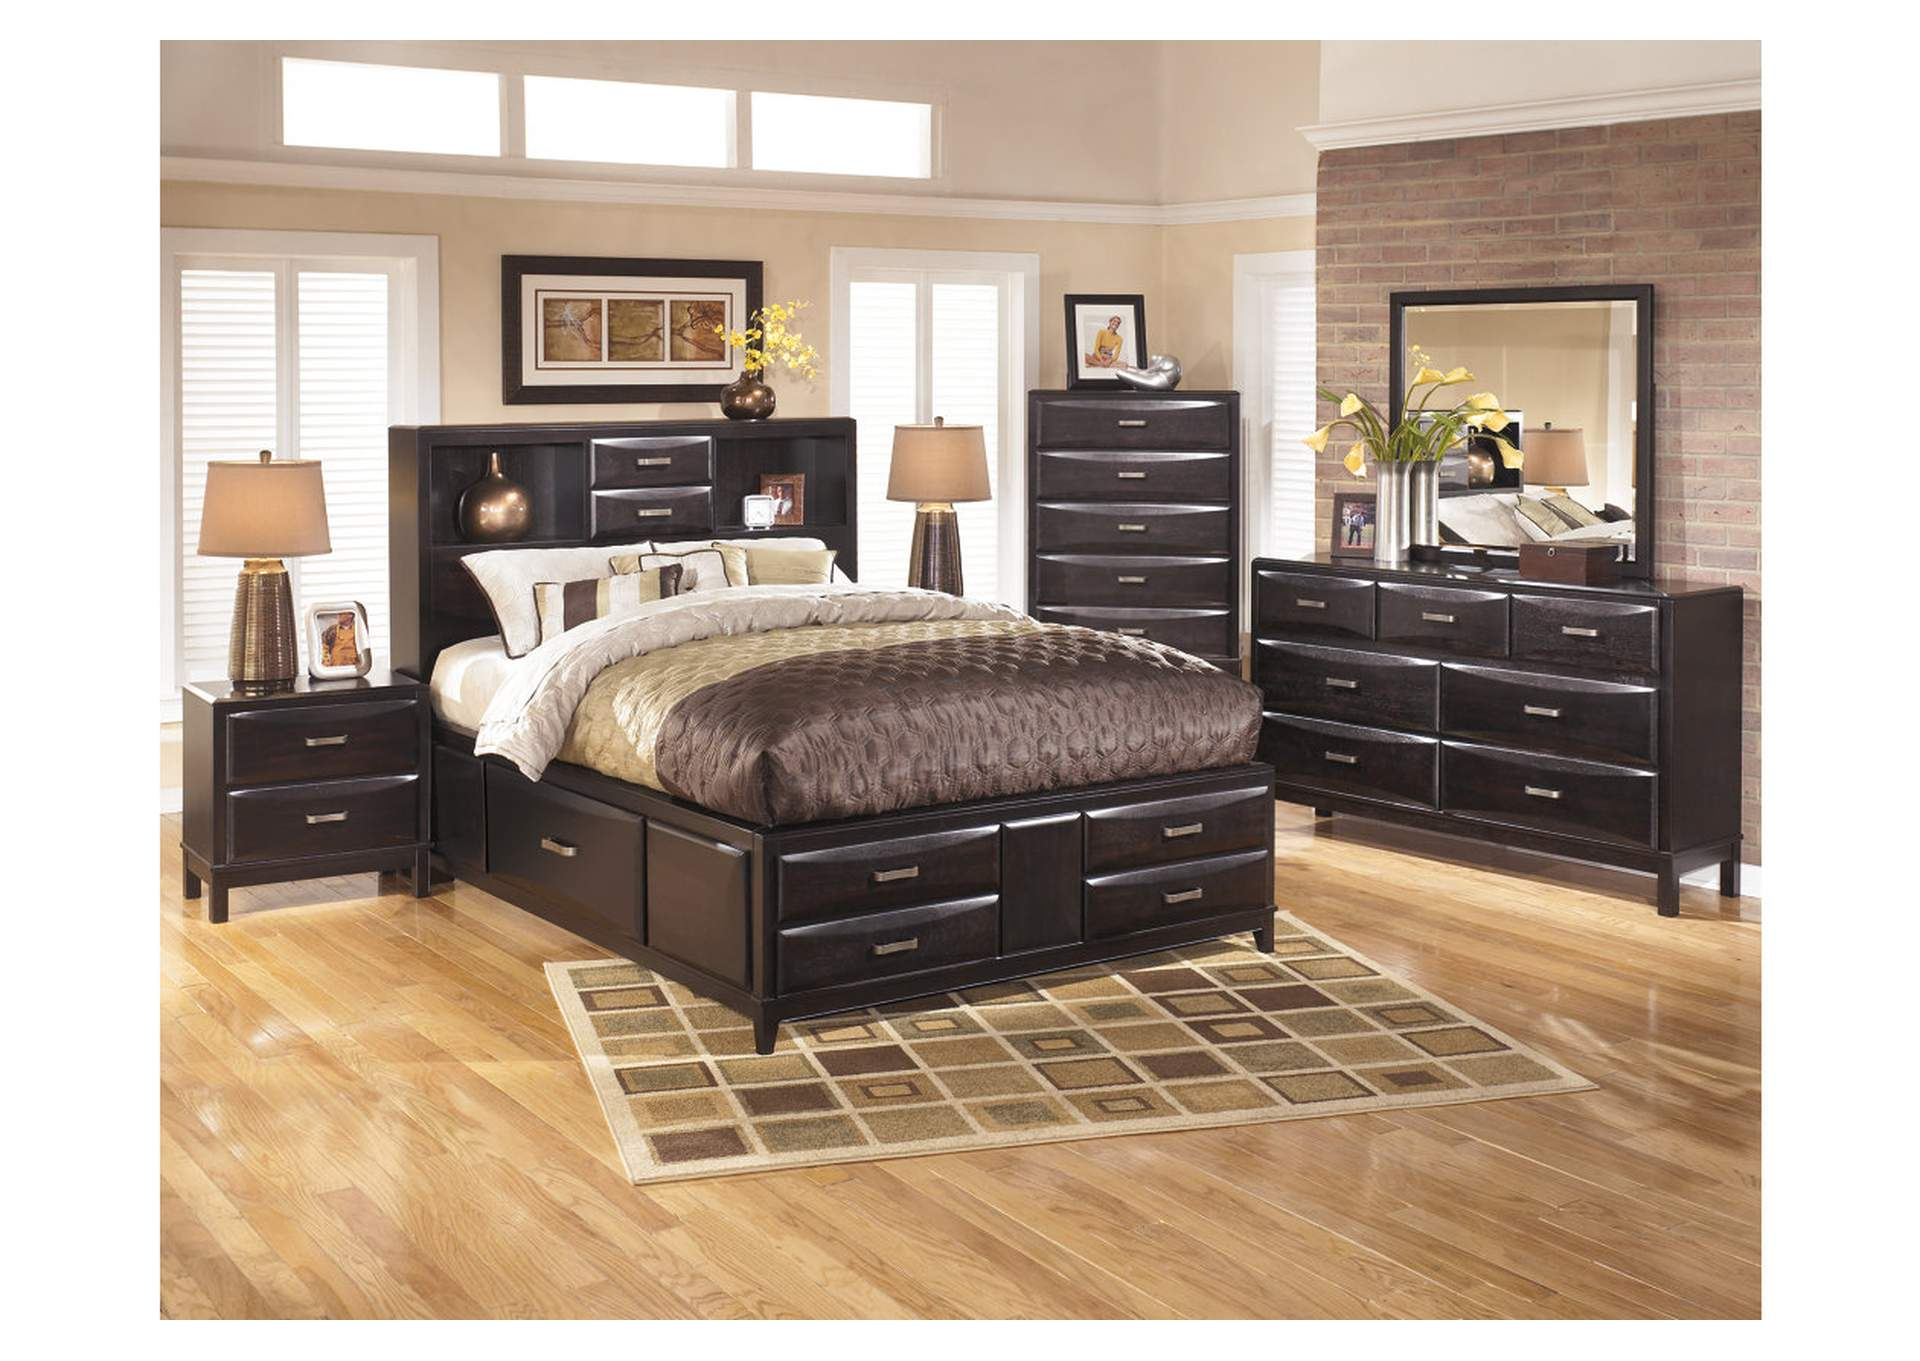 Kira Black Queen Storage Bed w/Dresser, Mirror, Drawer Chest & Nightstand,Ashley